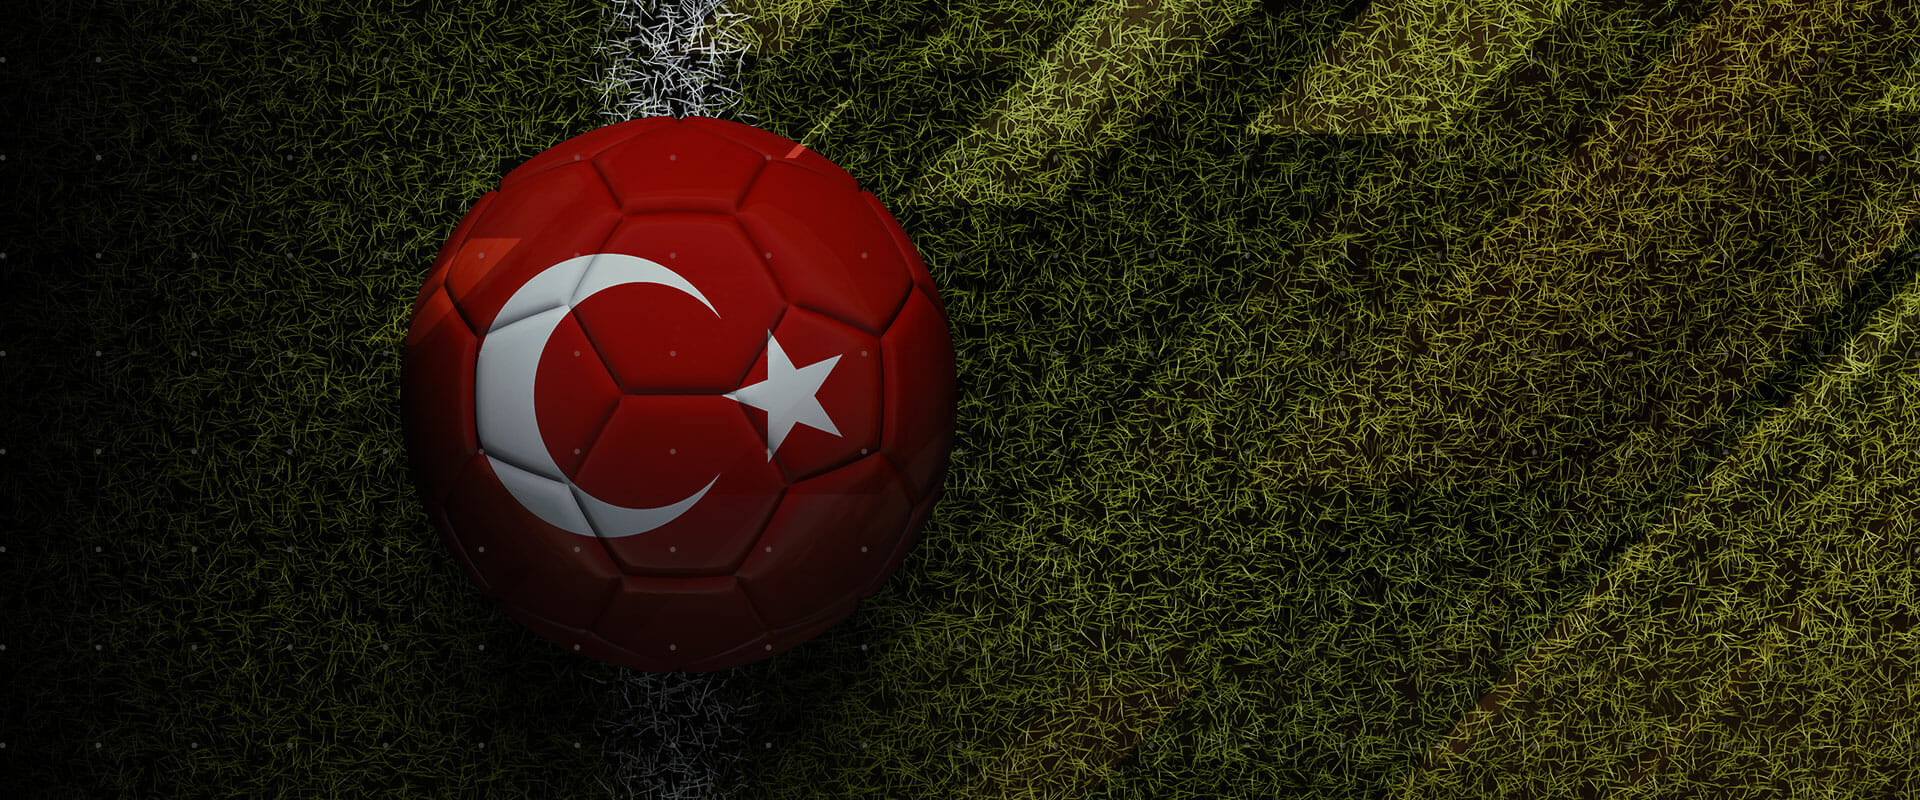 super lig football club report